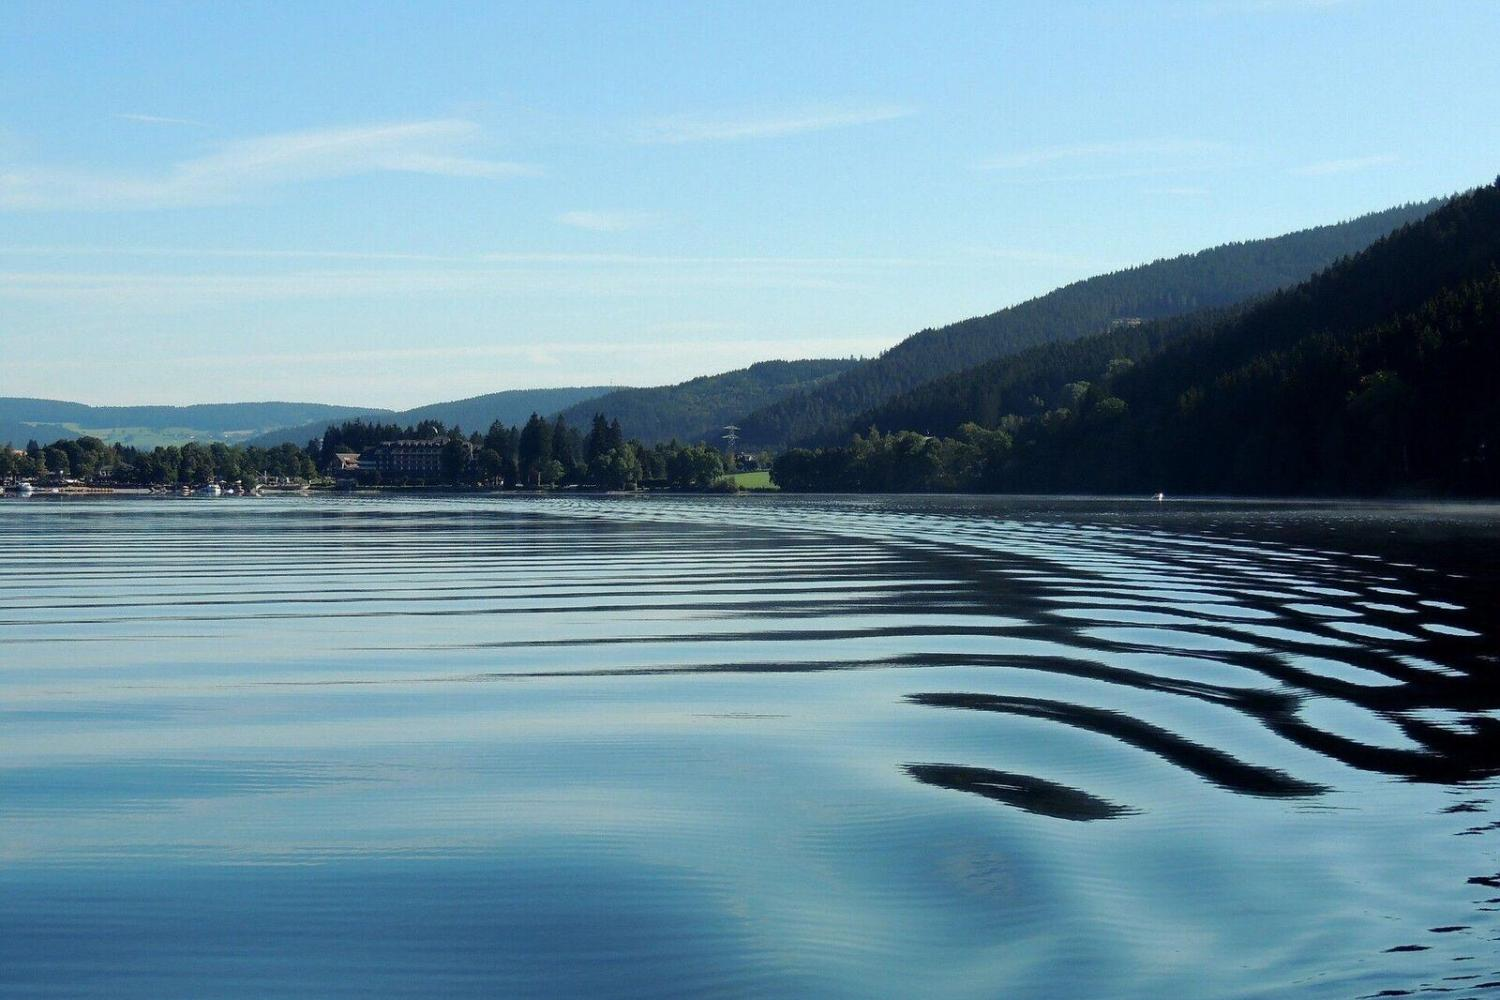 Enjoy the beautiful drive along Lake Schluchsee